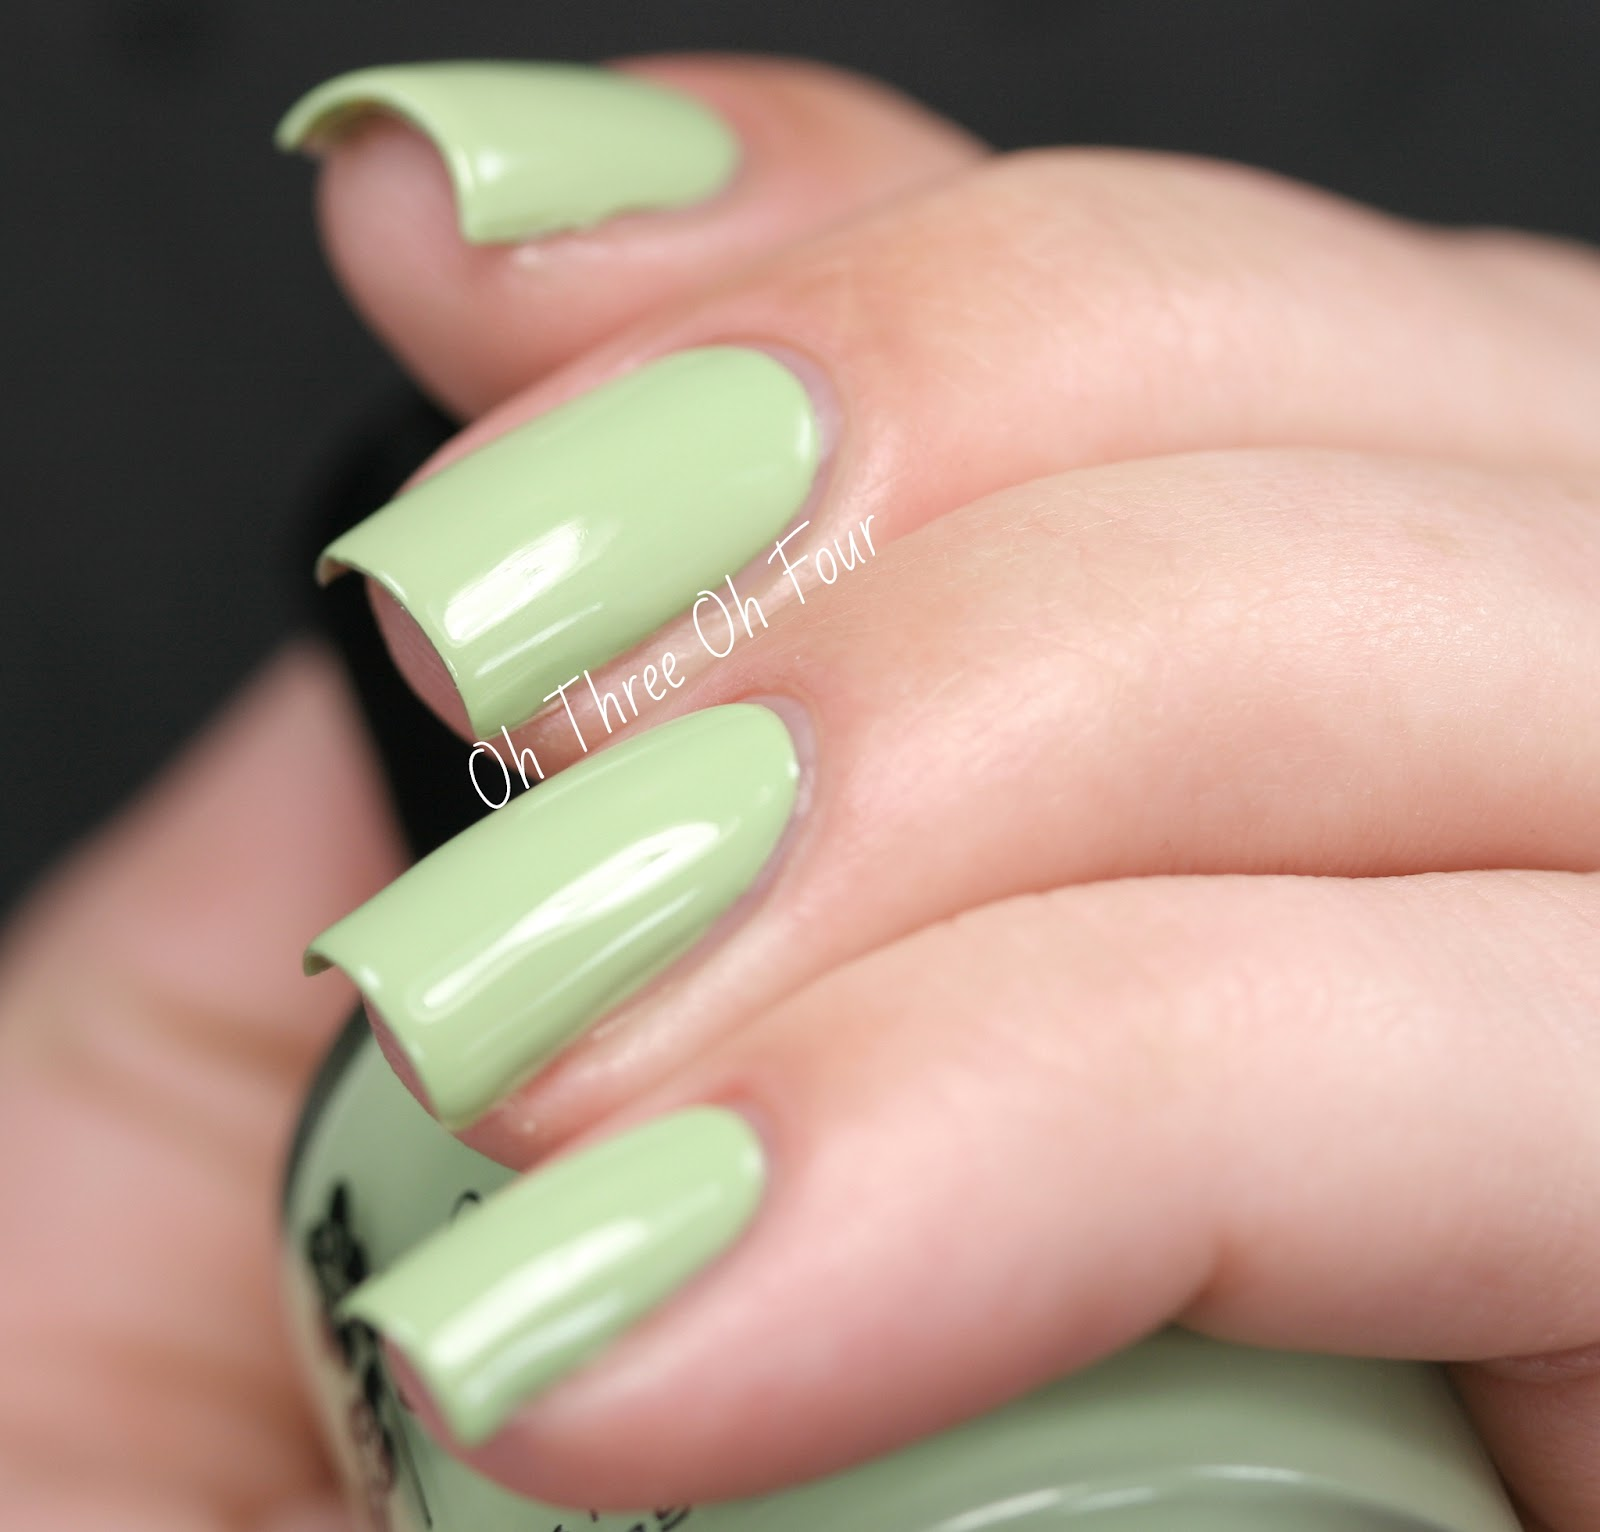 KBShimmer Honeydew List swatch